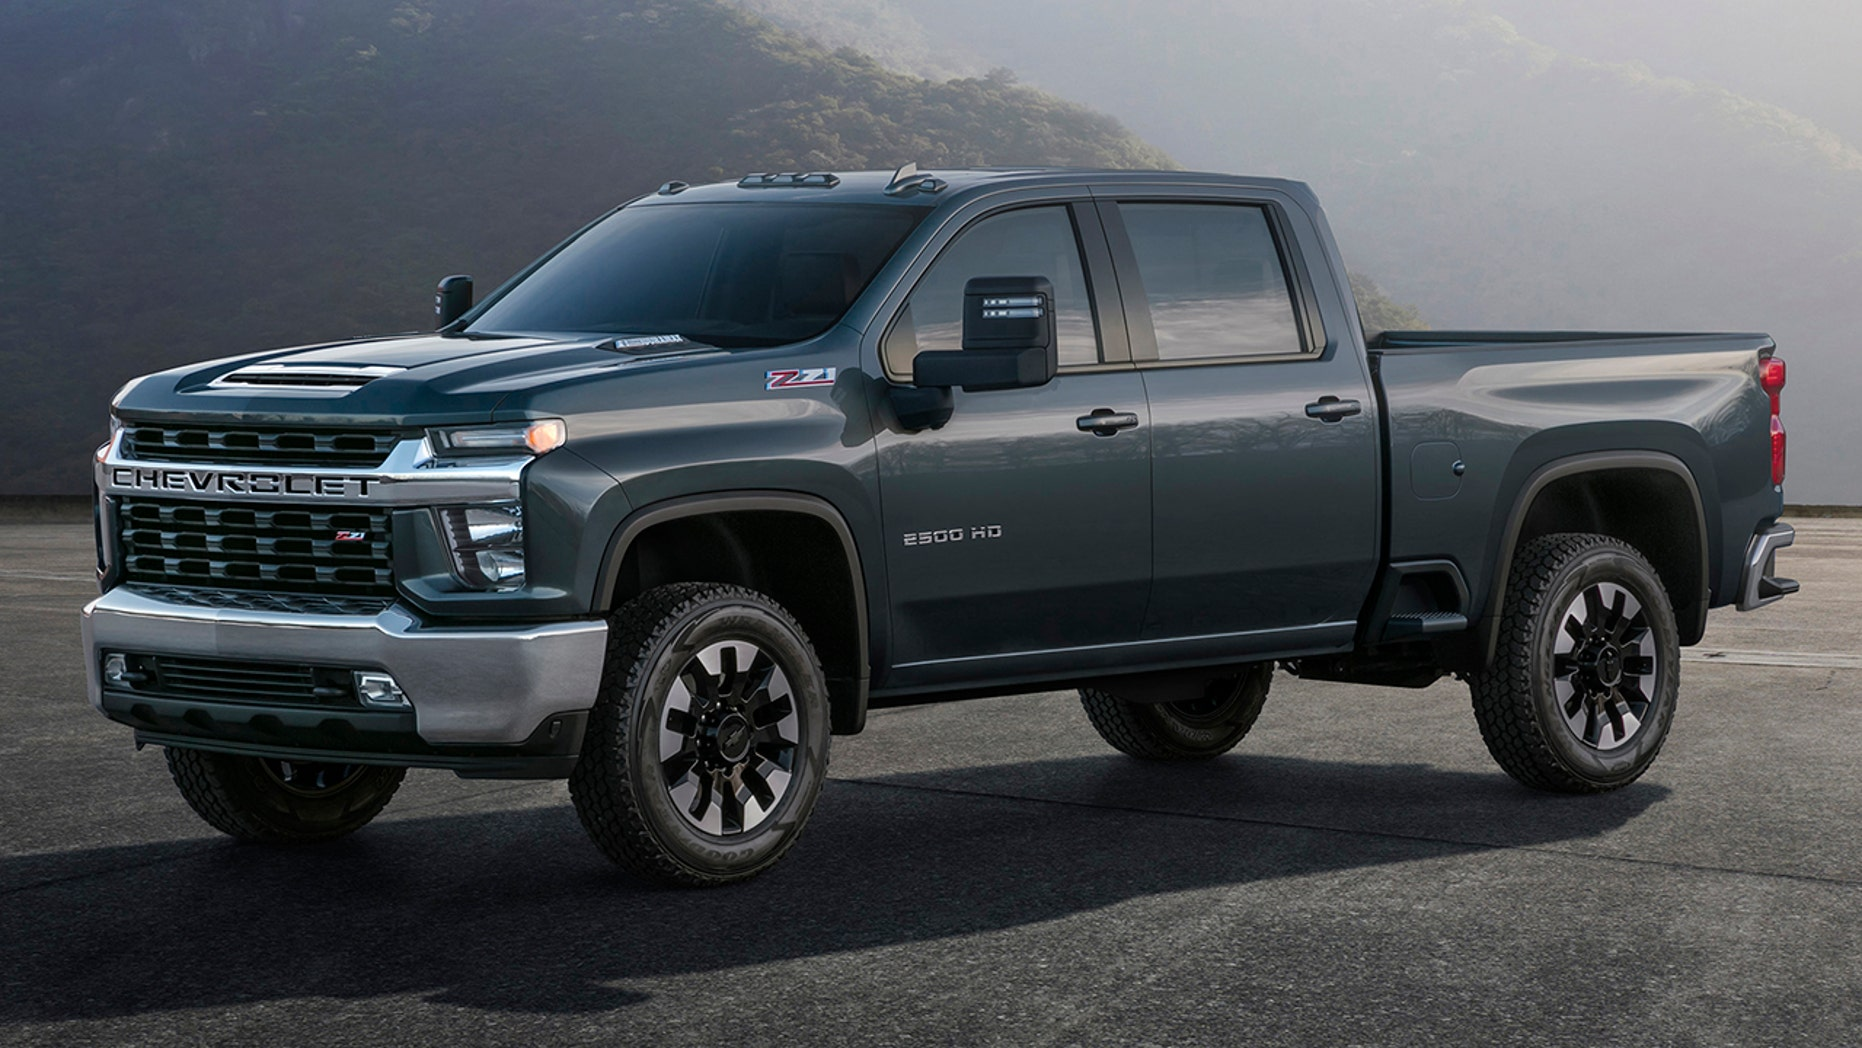 Chevrolet Silverado HD looks as brutish and bulky as ever